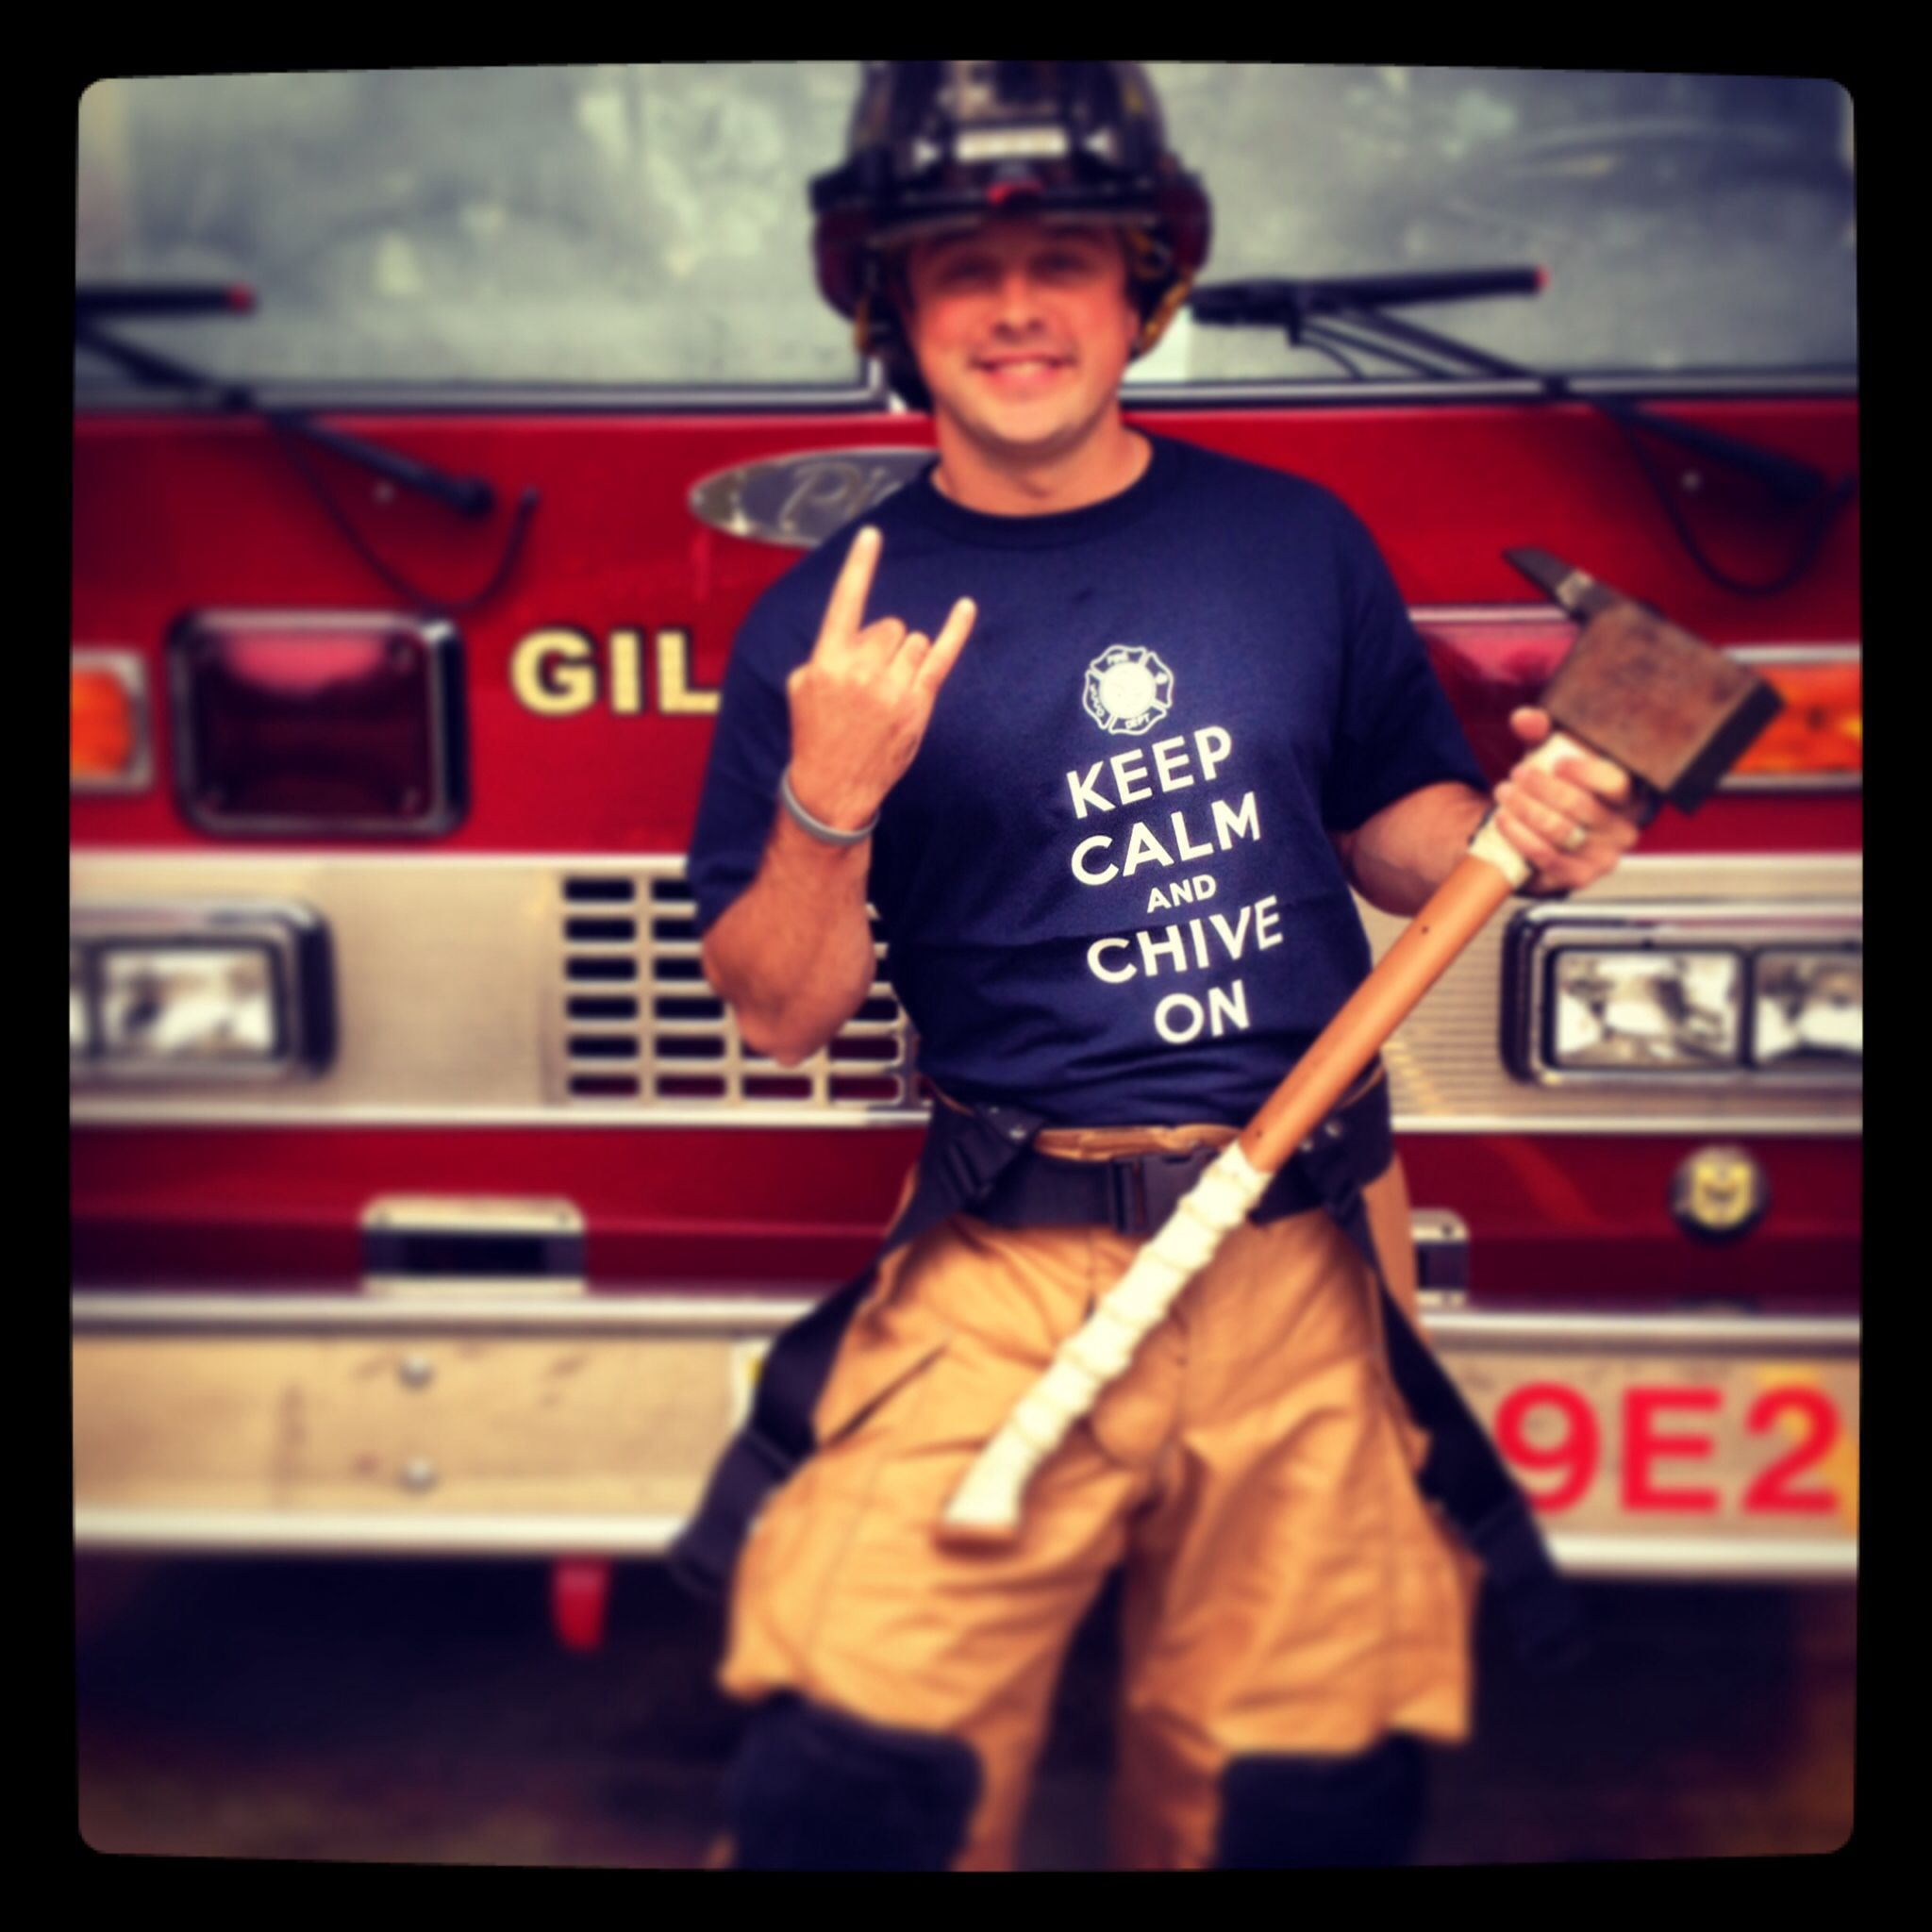 Firefighter, chive shirt kcco